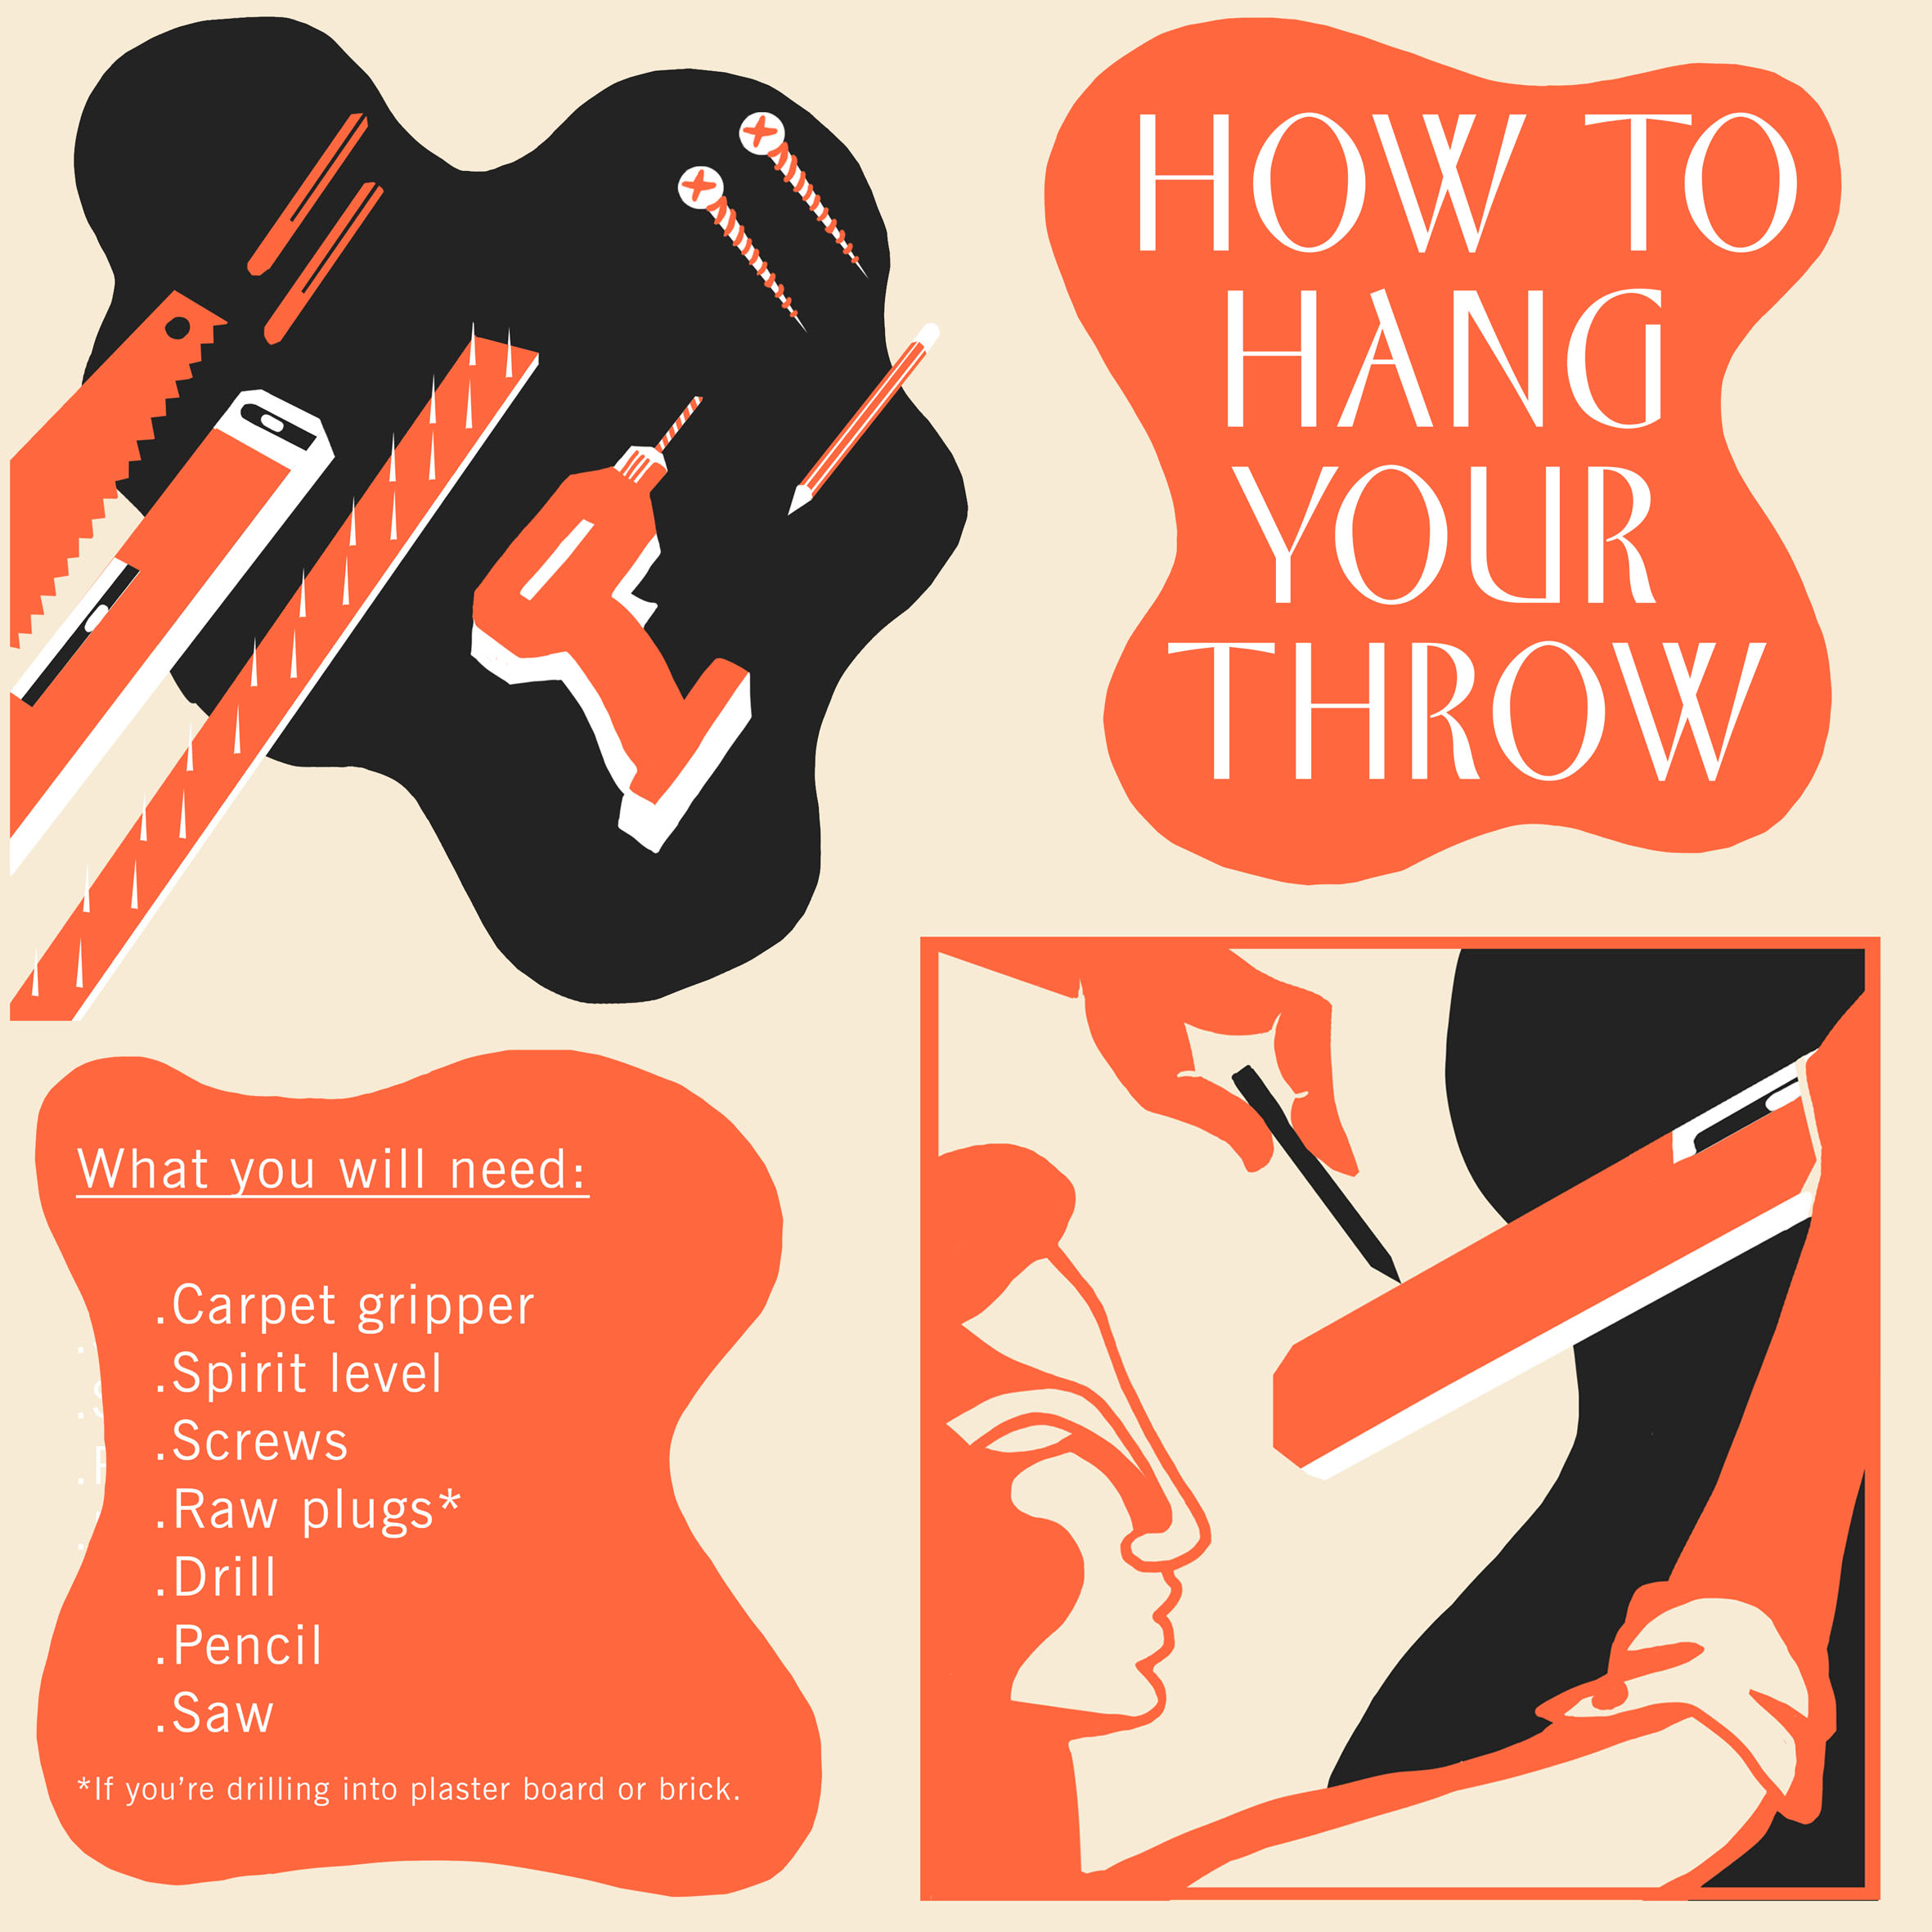 HOW TO HANG YOUR THROW